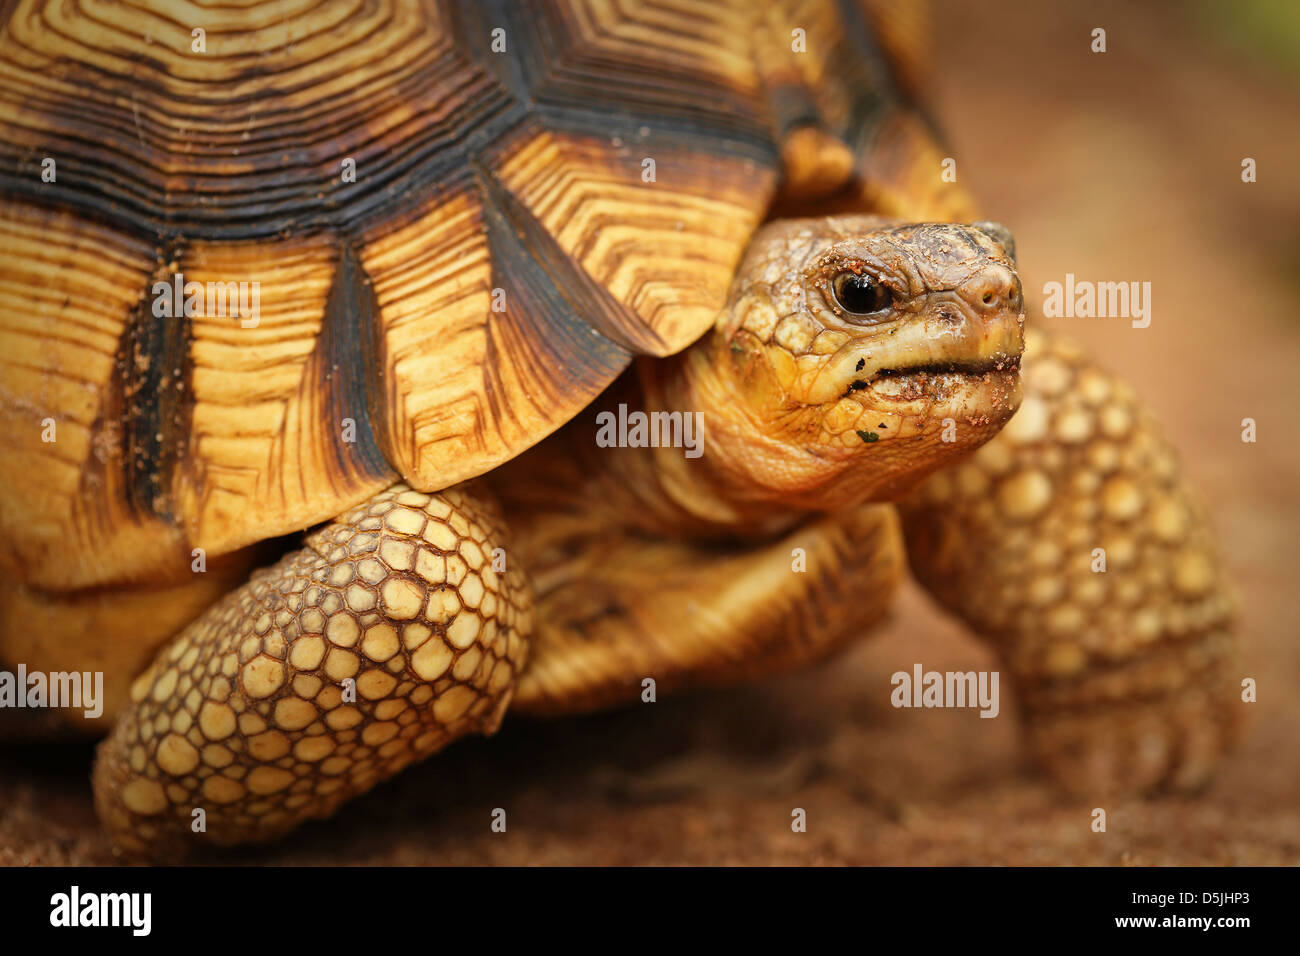 Angonoka or Ploughshare Tortoise (Astrochelys yniphora) in Madagascar. This is the world's most critically endangered - Stock Image